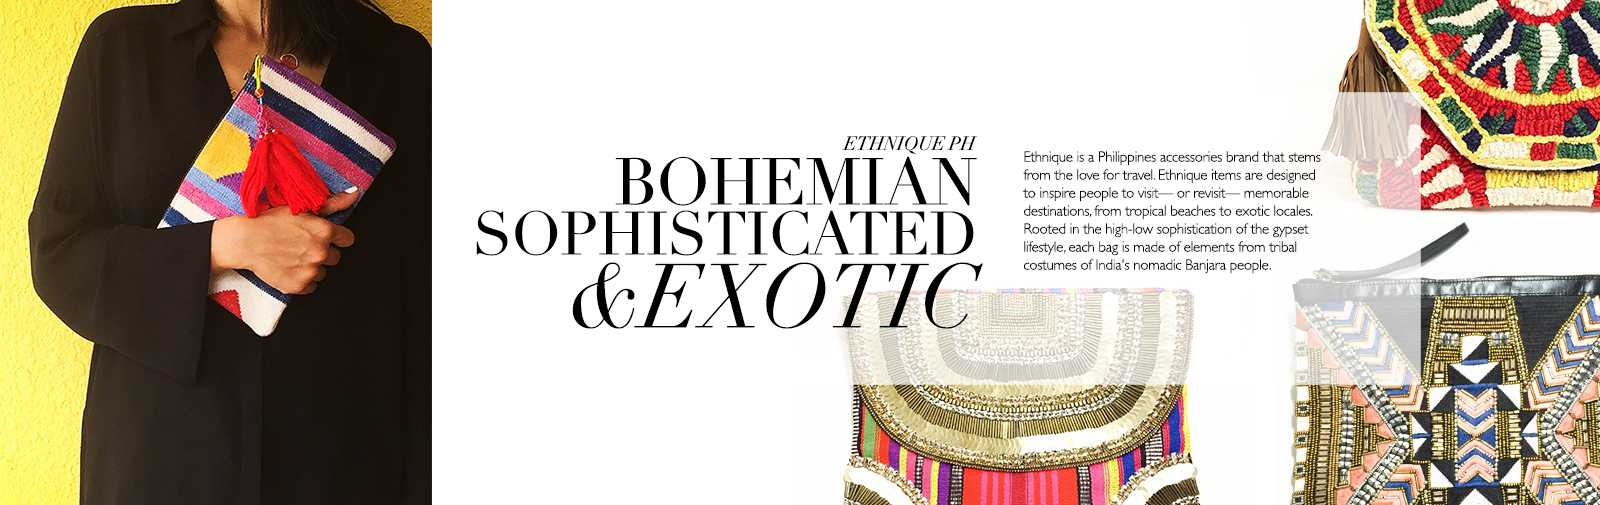 ETHNIQUE PH - BOHEMIAN SOPHISTICATED & EXOTIC- Ethnique is a Philippines accessories brand that stems from the love for travel. Ethnique items are designed to inspire people to visit - or revisit - memorable destinations, from tropical beaches to exotic locales. Rooted in the high-low sophistication of the gypset lifestyle, each bag is made of elements from tribal costumes of India's nomadic Banjara people.